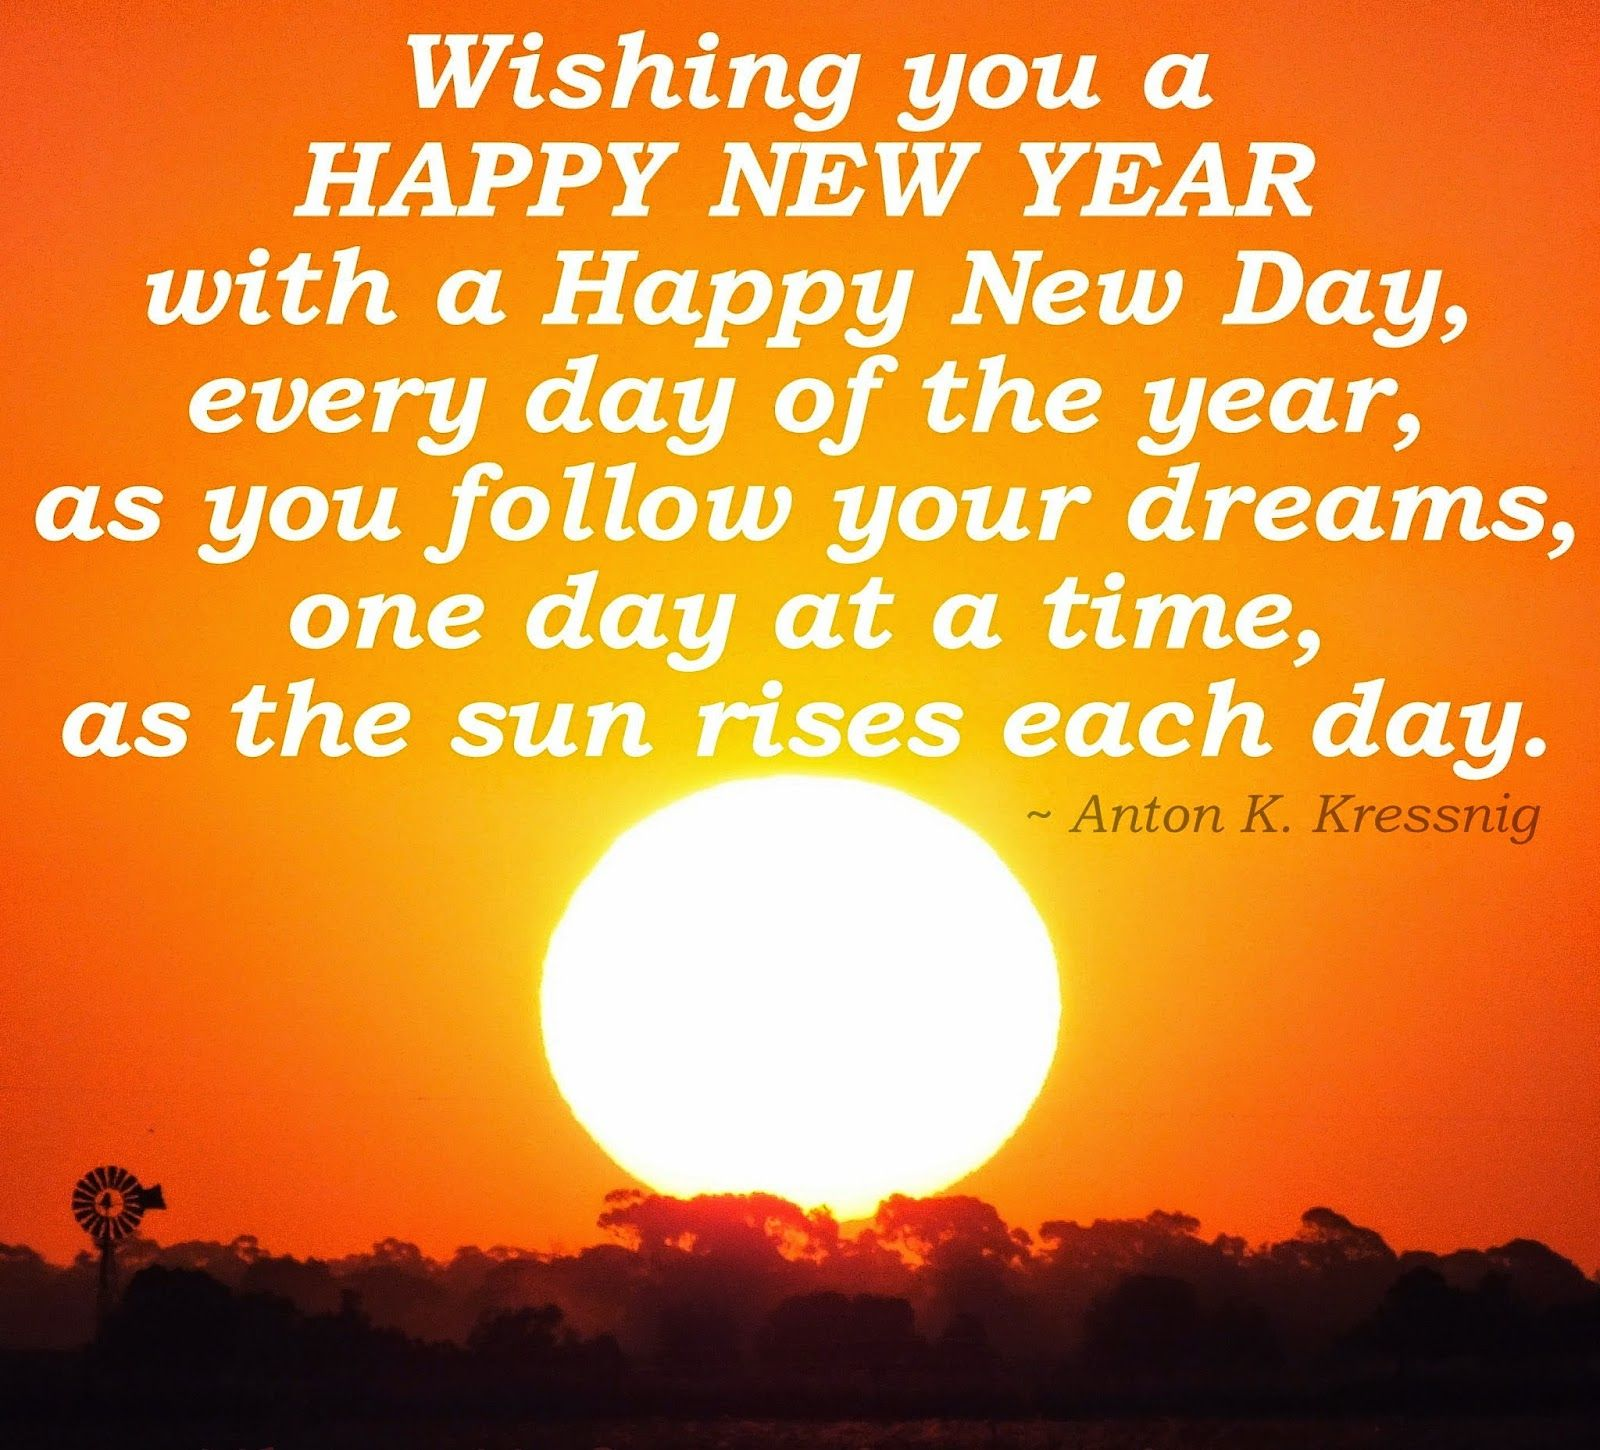 wishing you happy new year quotes 2016